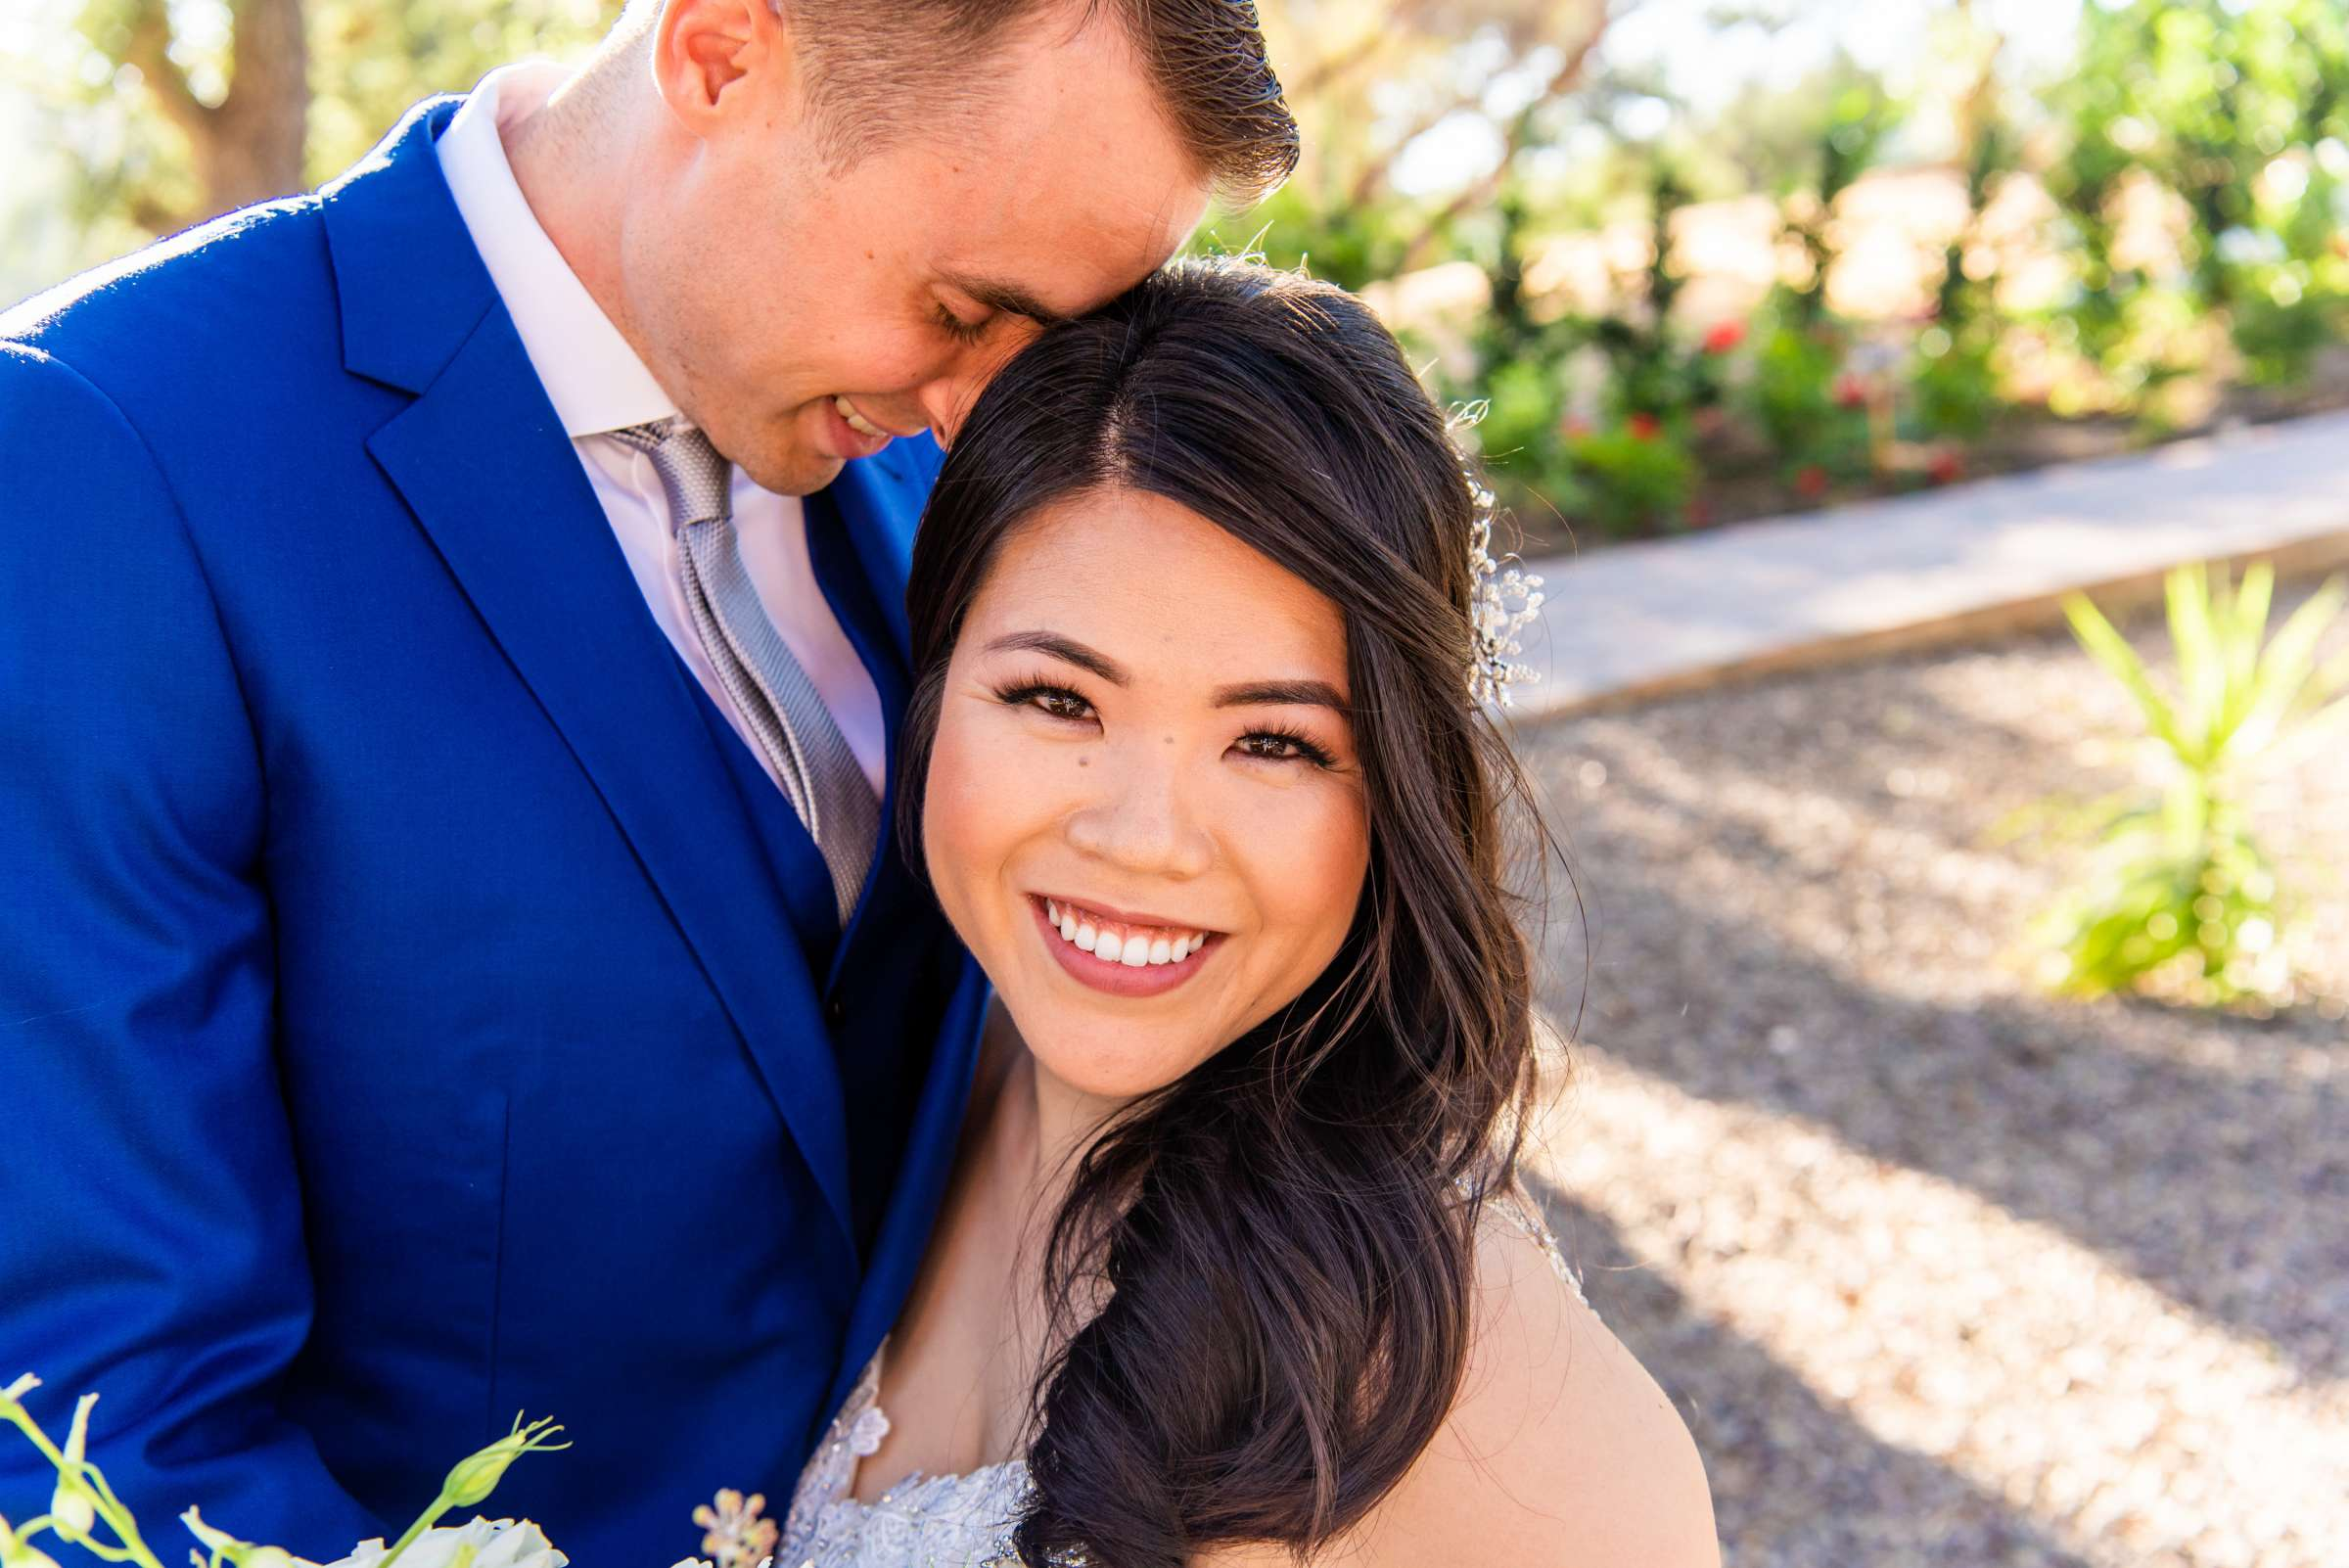 Mt Woodson Castle Wedding coordinated by I Do Weddings, Aya and Jared Wedding Photo #486964 by True Photography